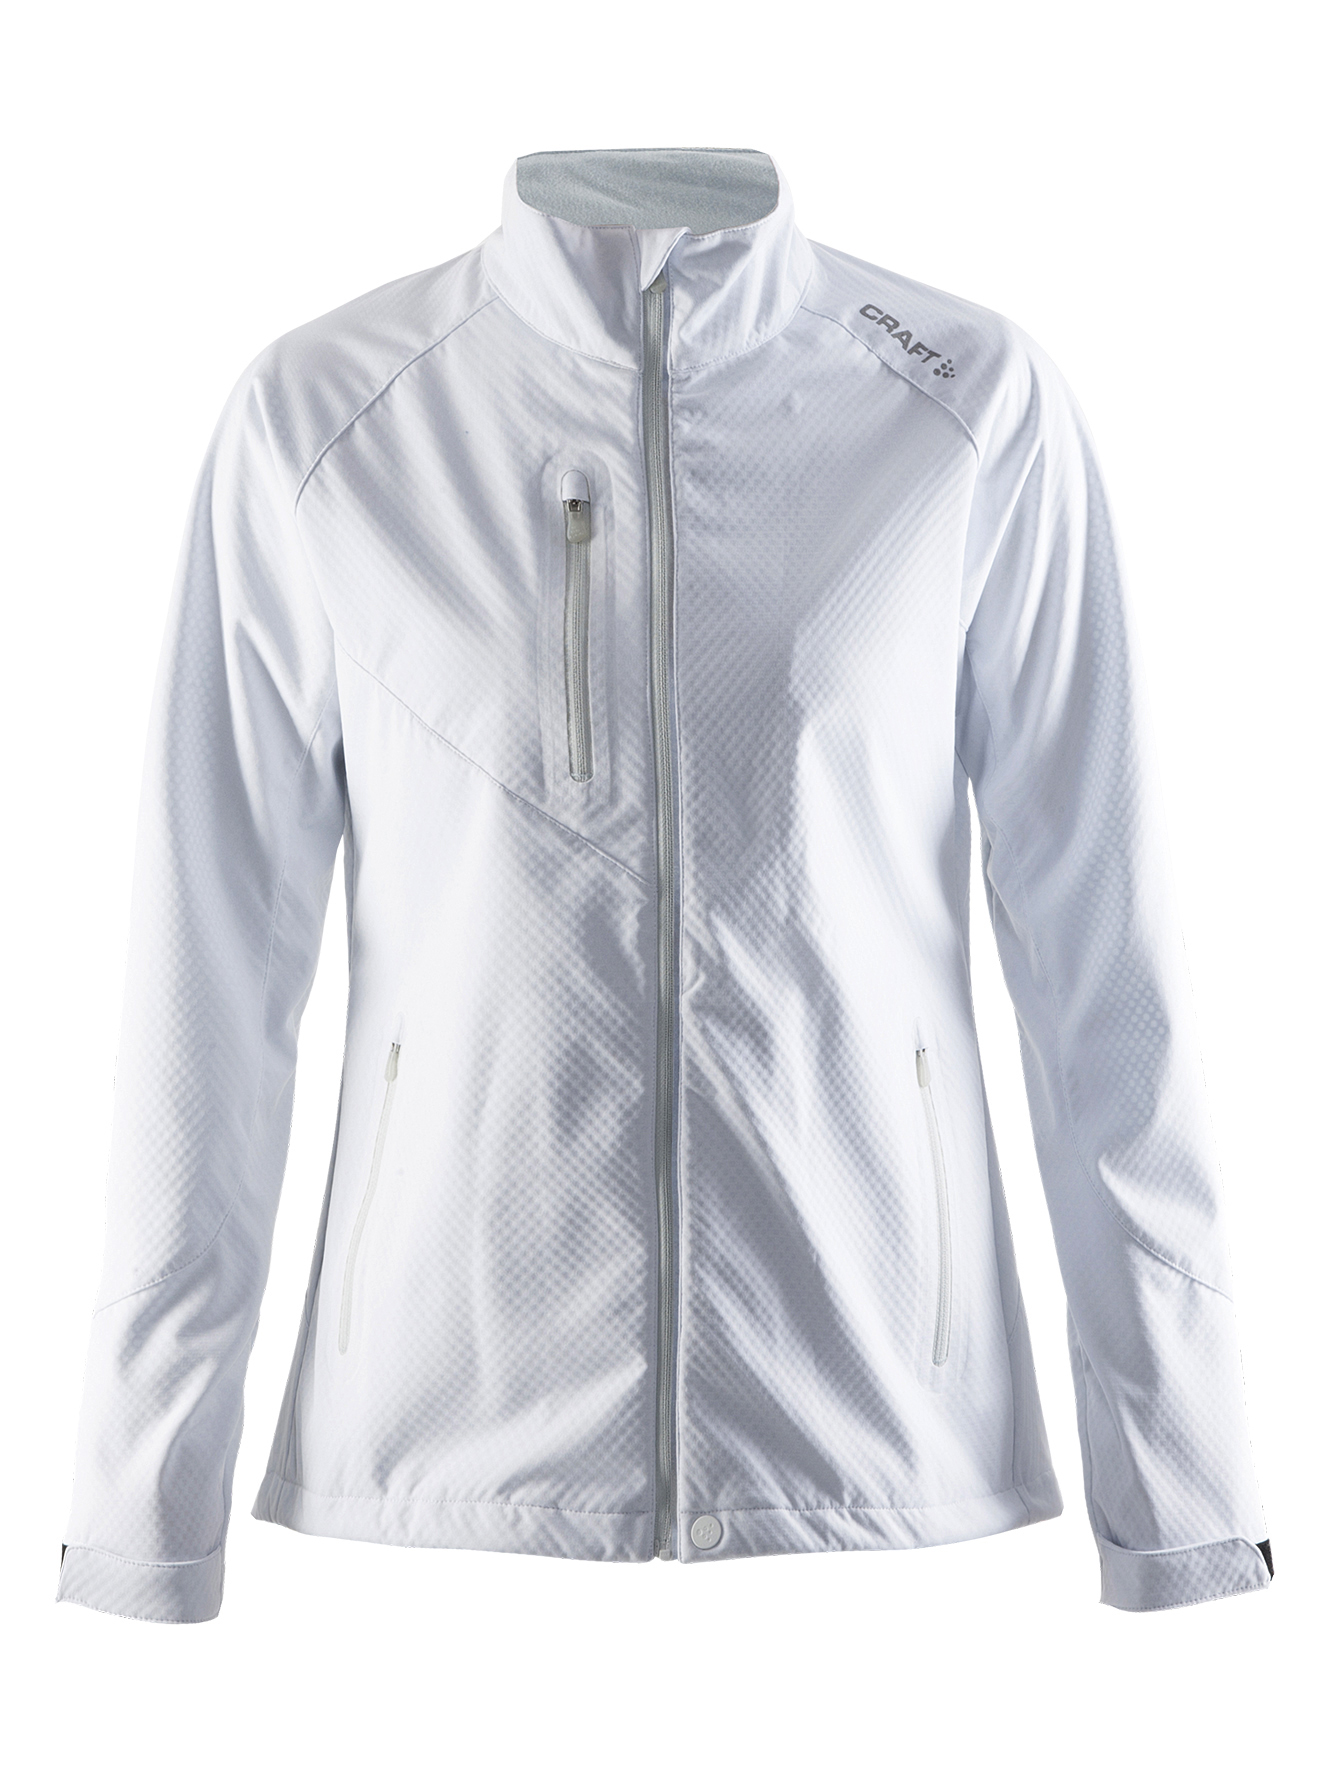 Craft Bormio Softshell Jacket women white xxl white